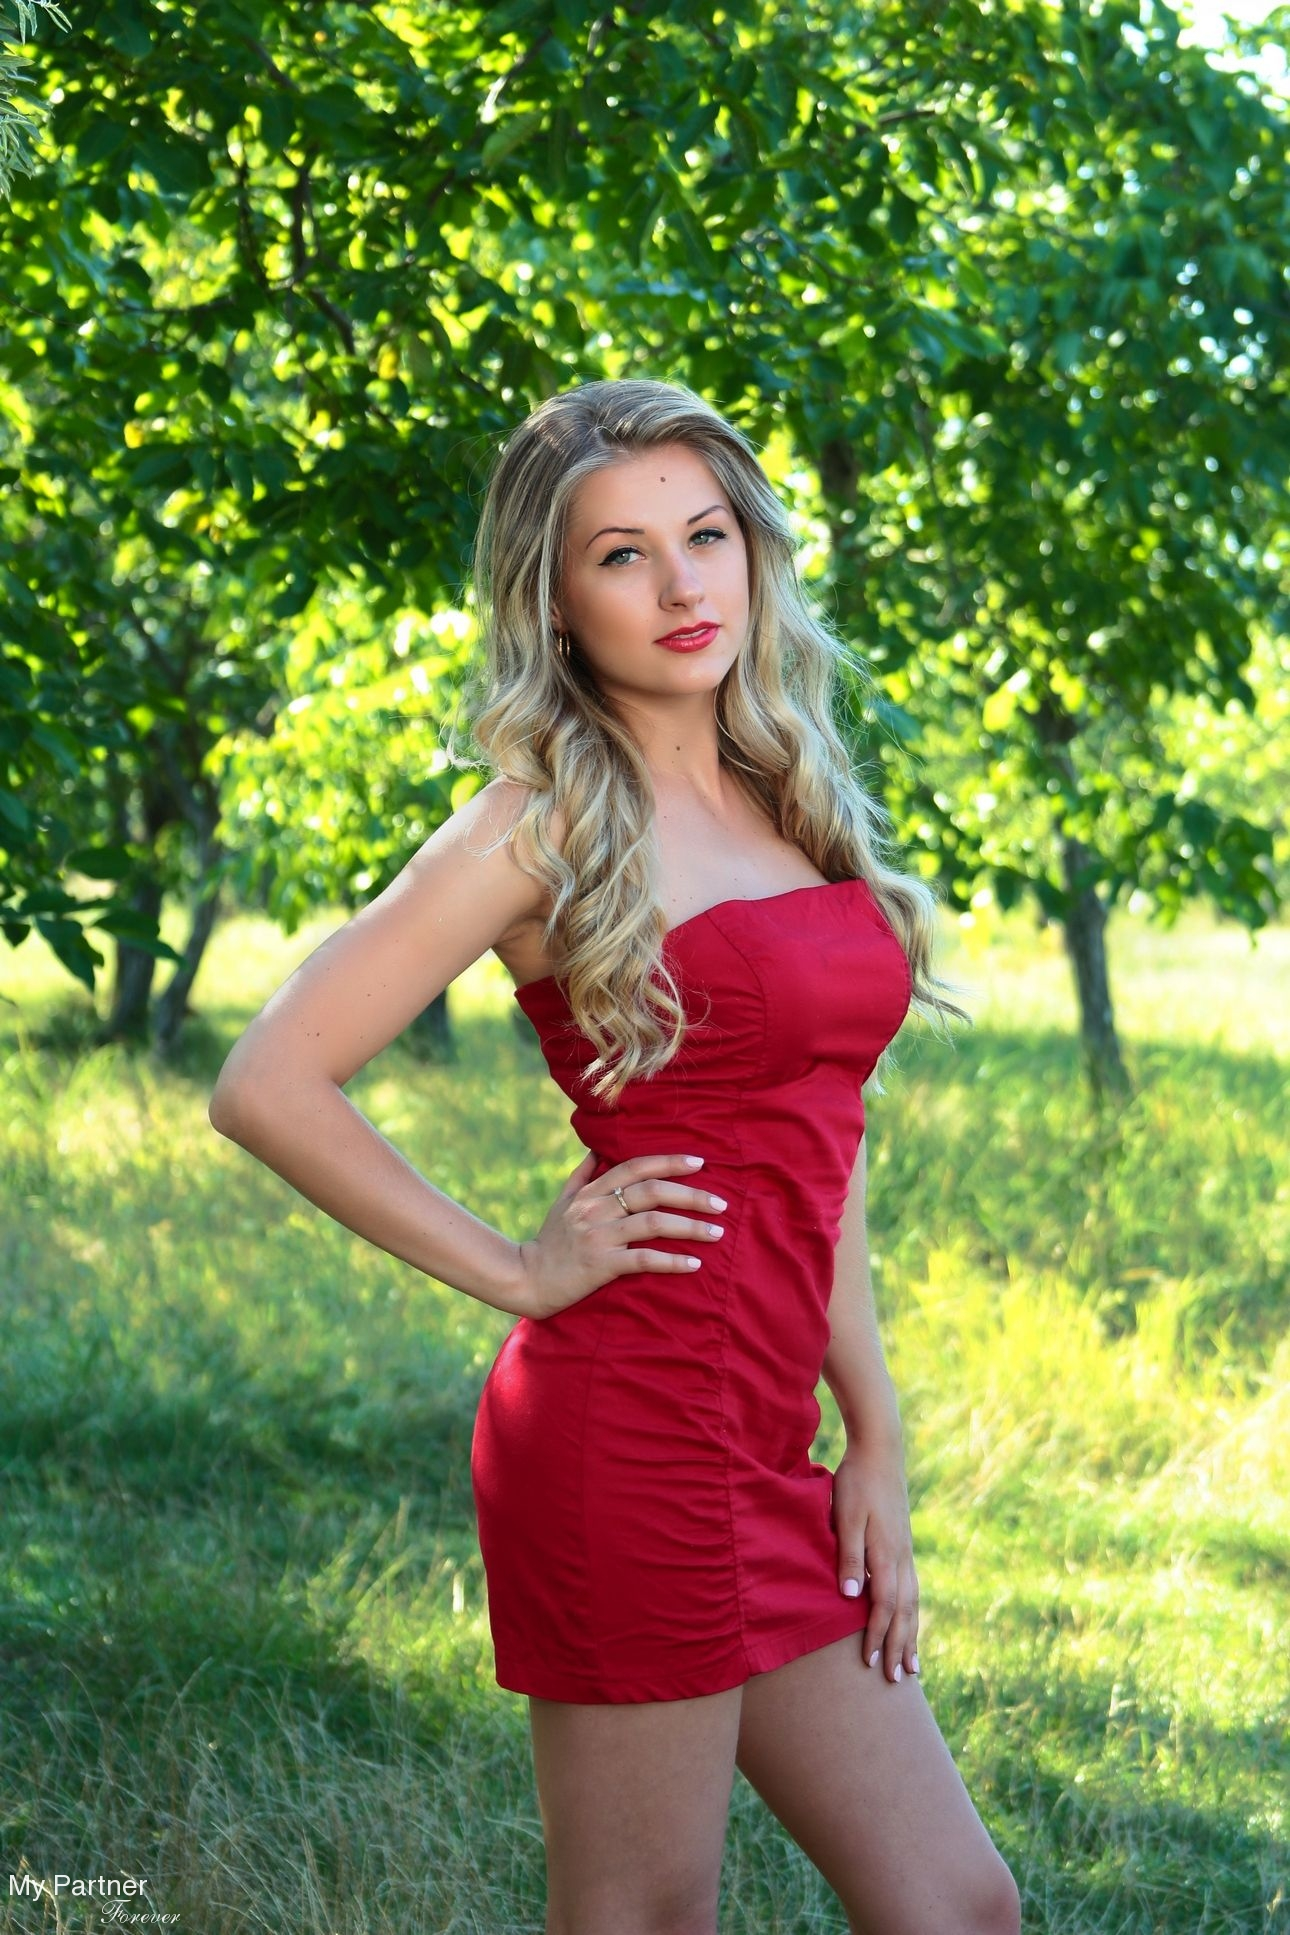 Free ukrainian women dating sites in chicago